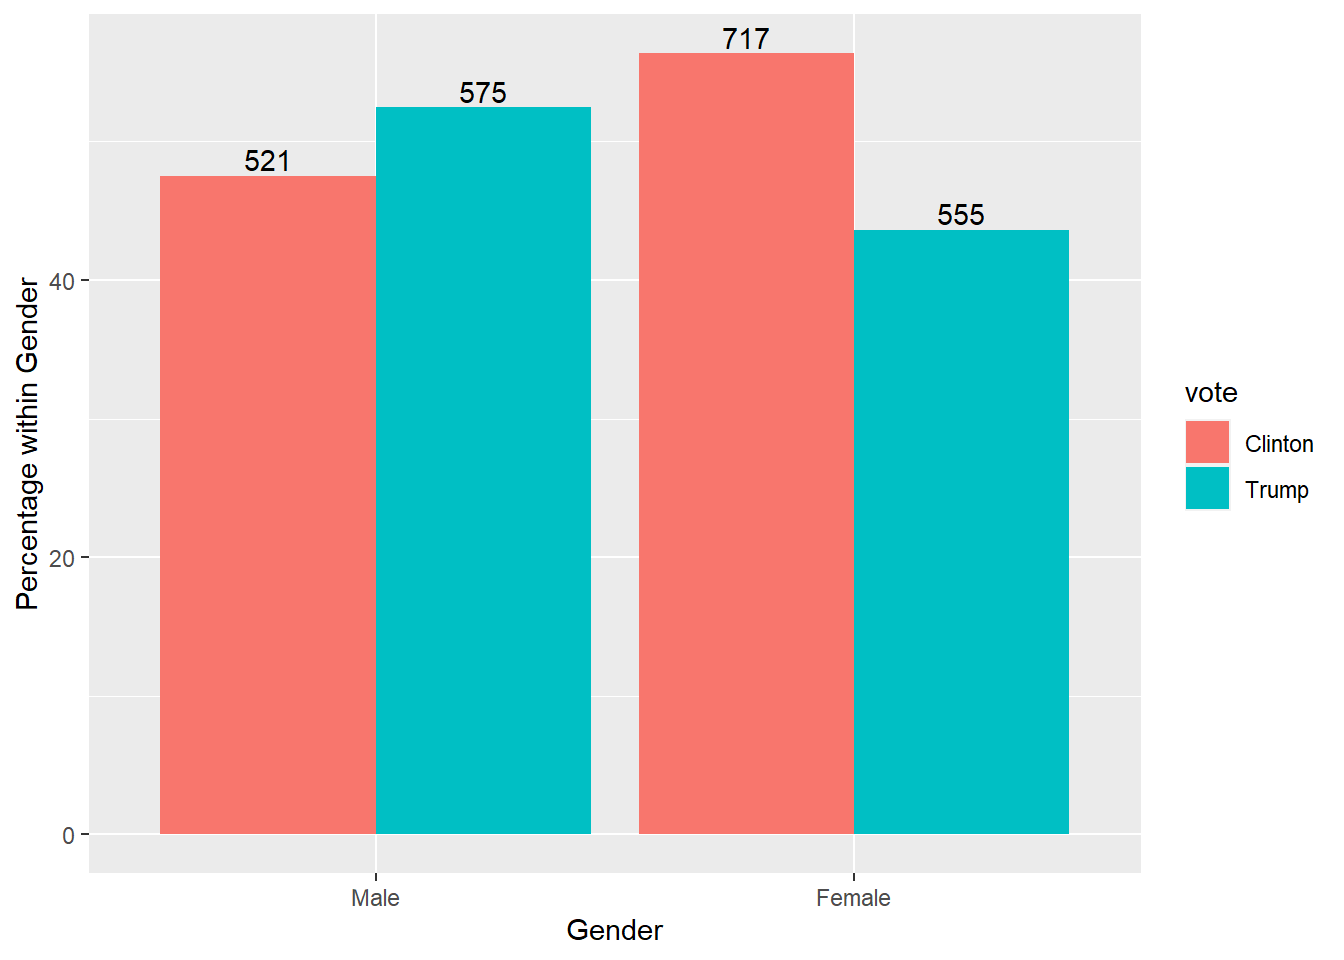 Bar graph of gender by vote